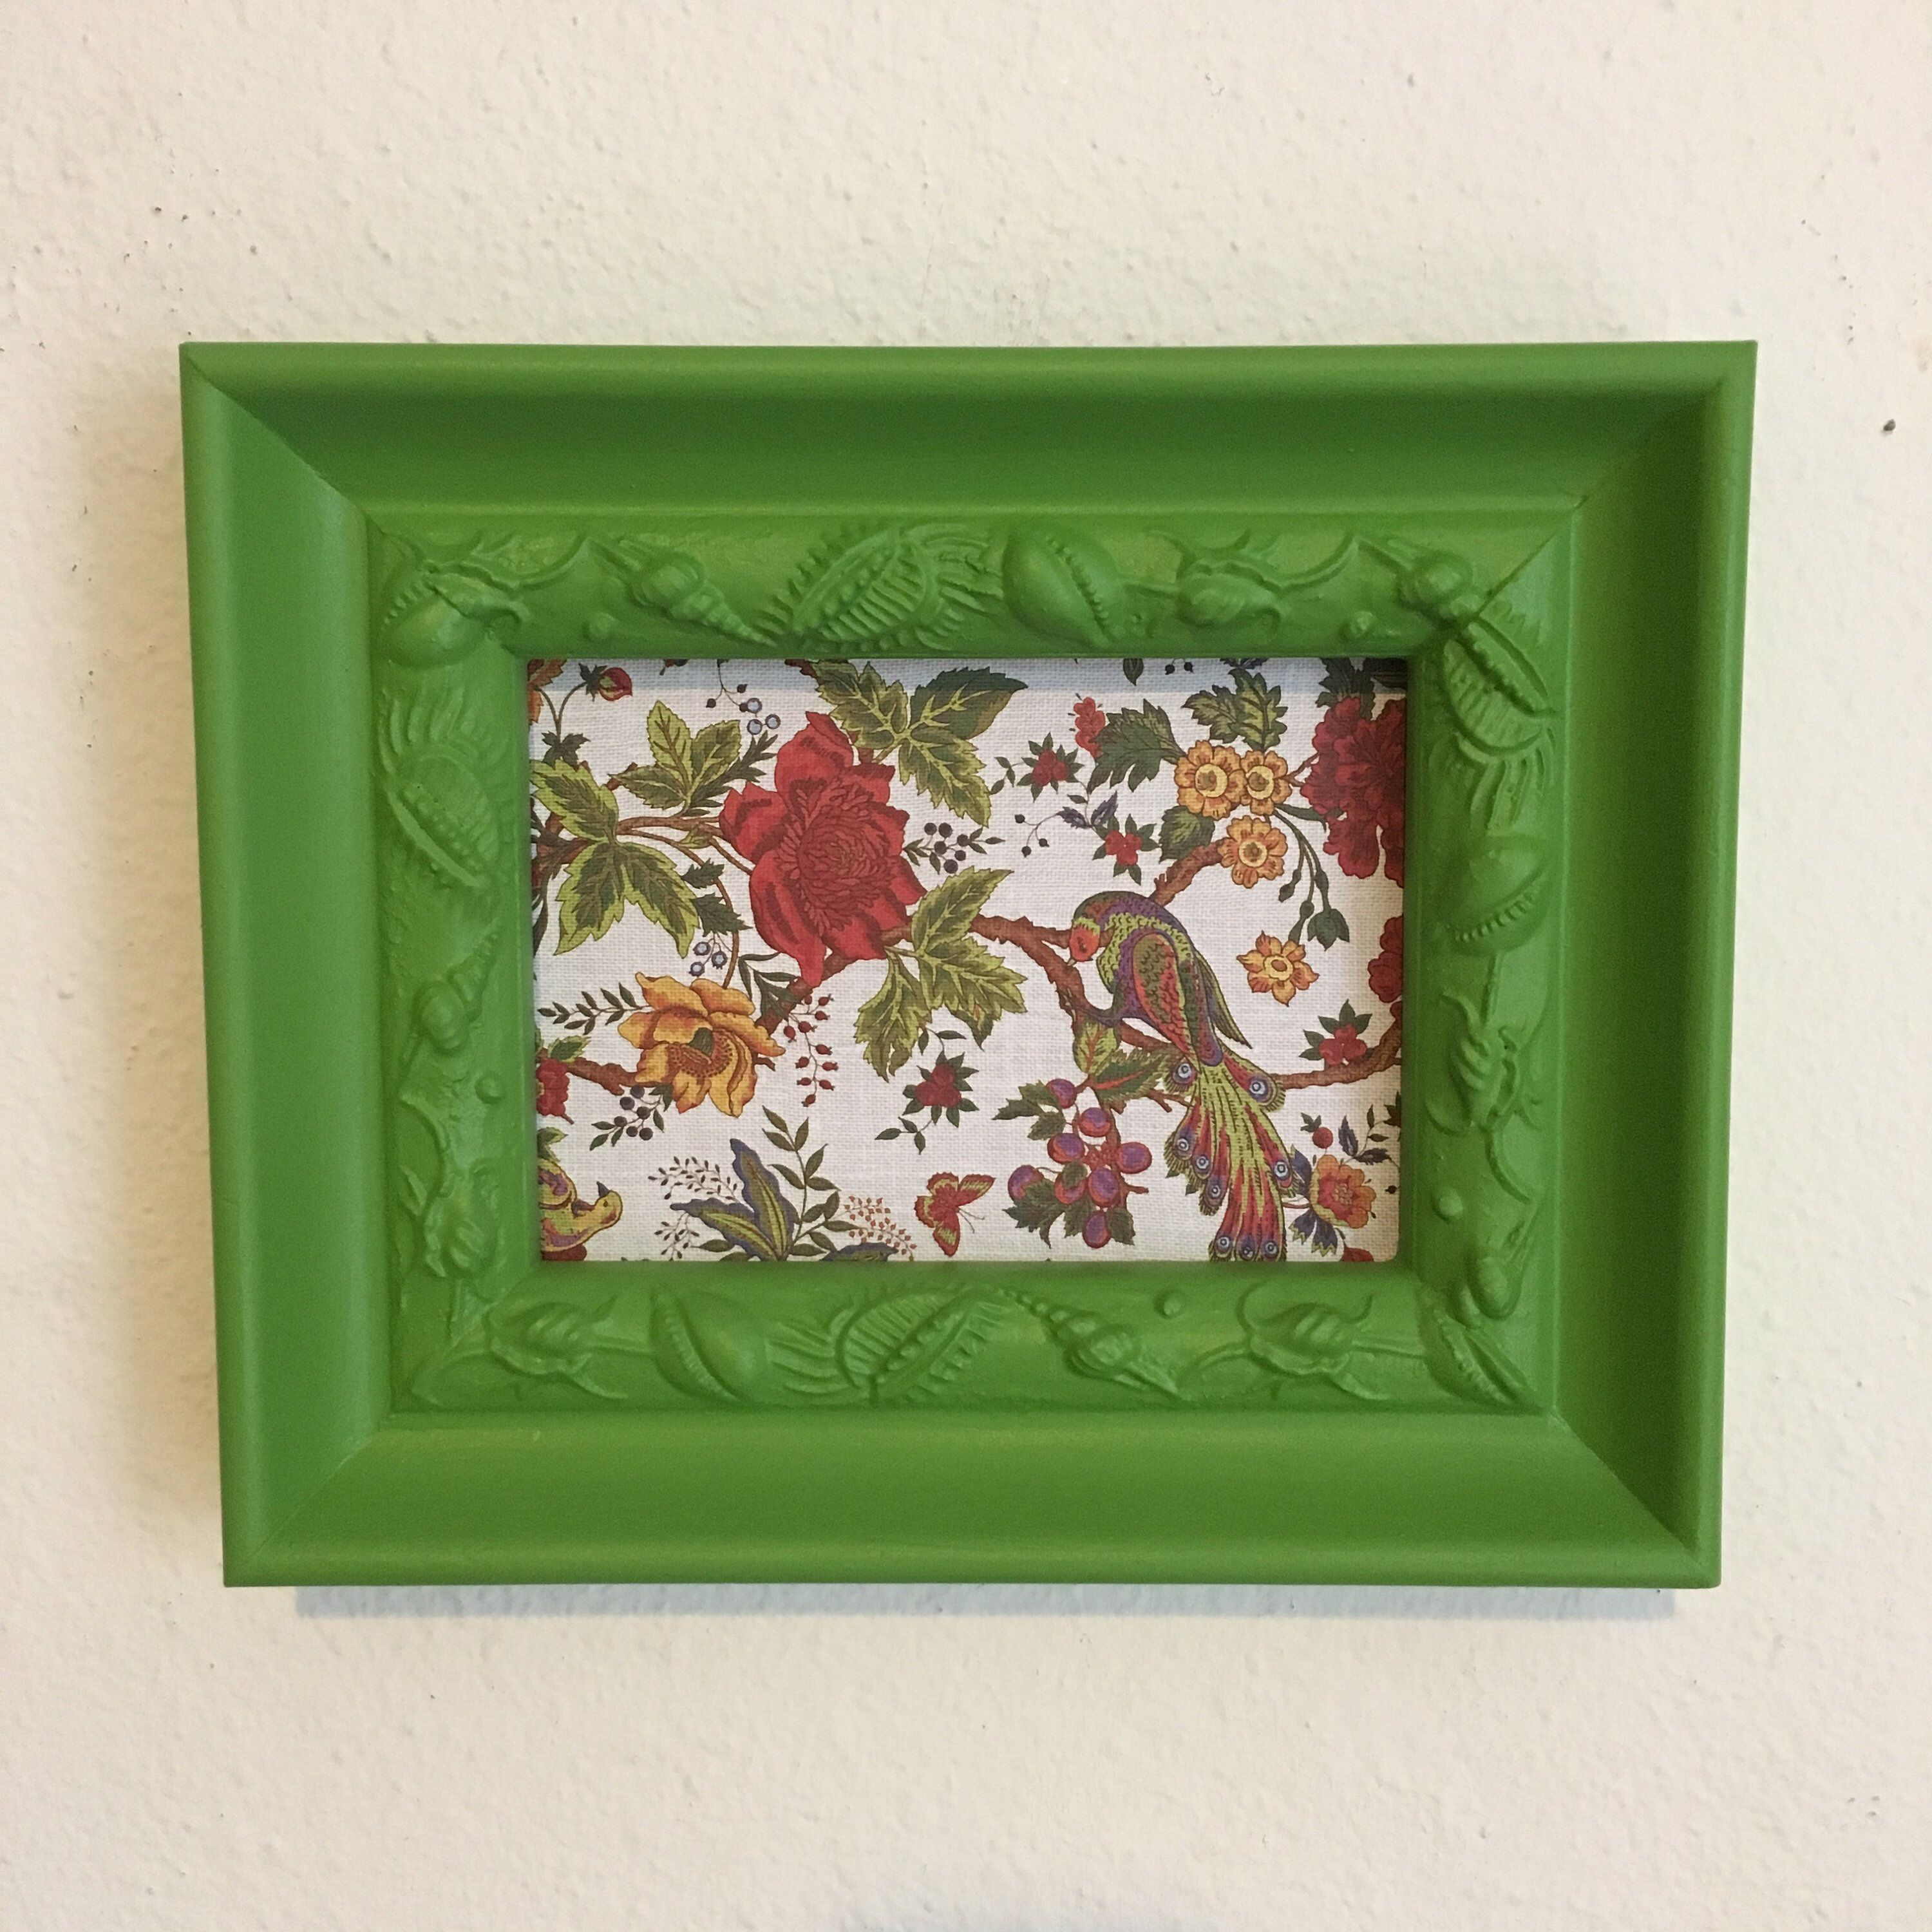 Picture Frame Upcycled Handpainted Green 5x7 Photo Frame Chunky Frame One Of A Kind Kitchen Decor By Trexframes On Et Frames On Wall Frame Picture Frames